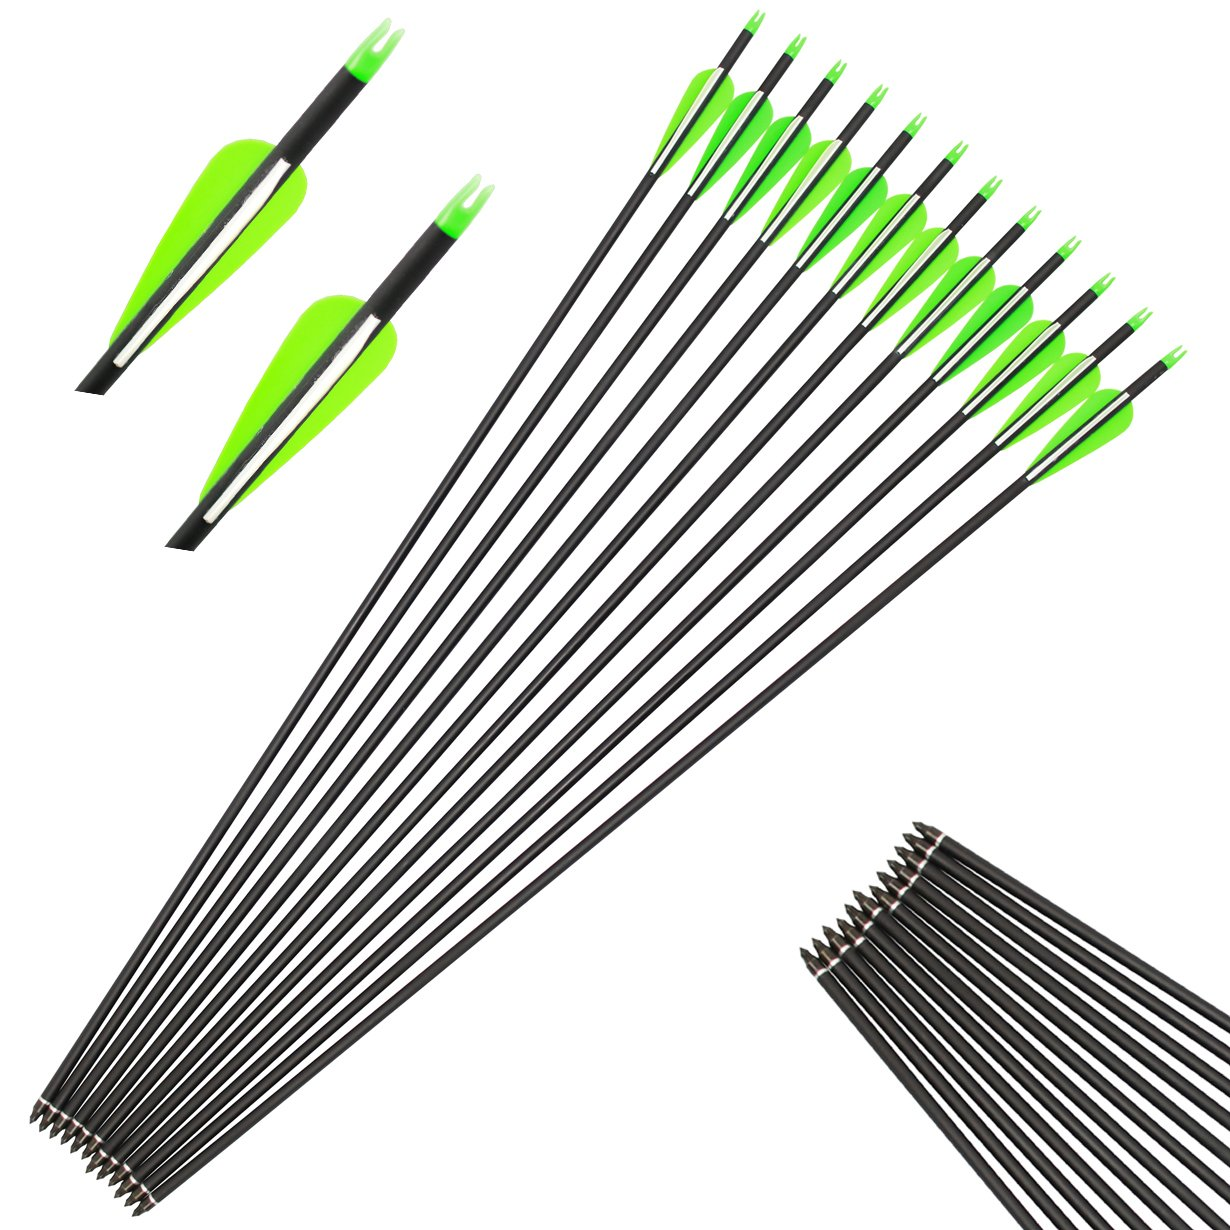 kaimei 30'' Carbon Fiber Arrow Plastic White-green Feather Replaceable Pointed Screw-in Recurve Compound Bow Practice Targeting Arrows (12 pieces)